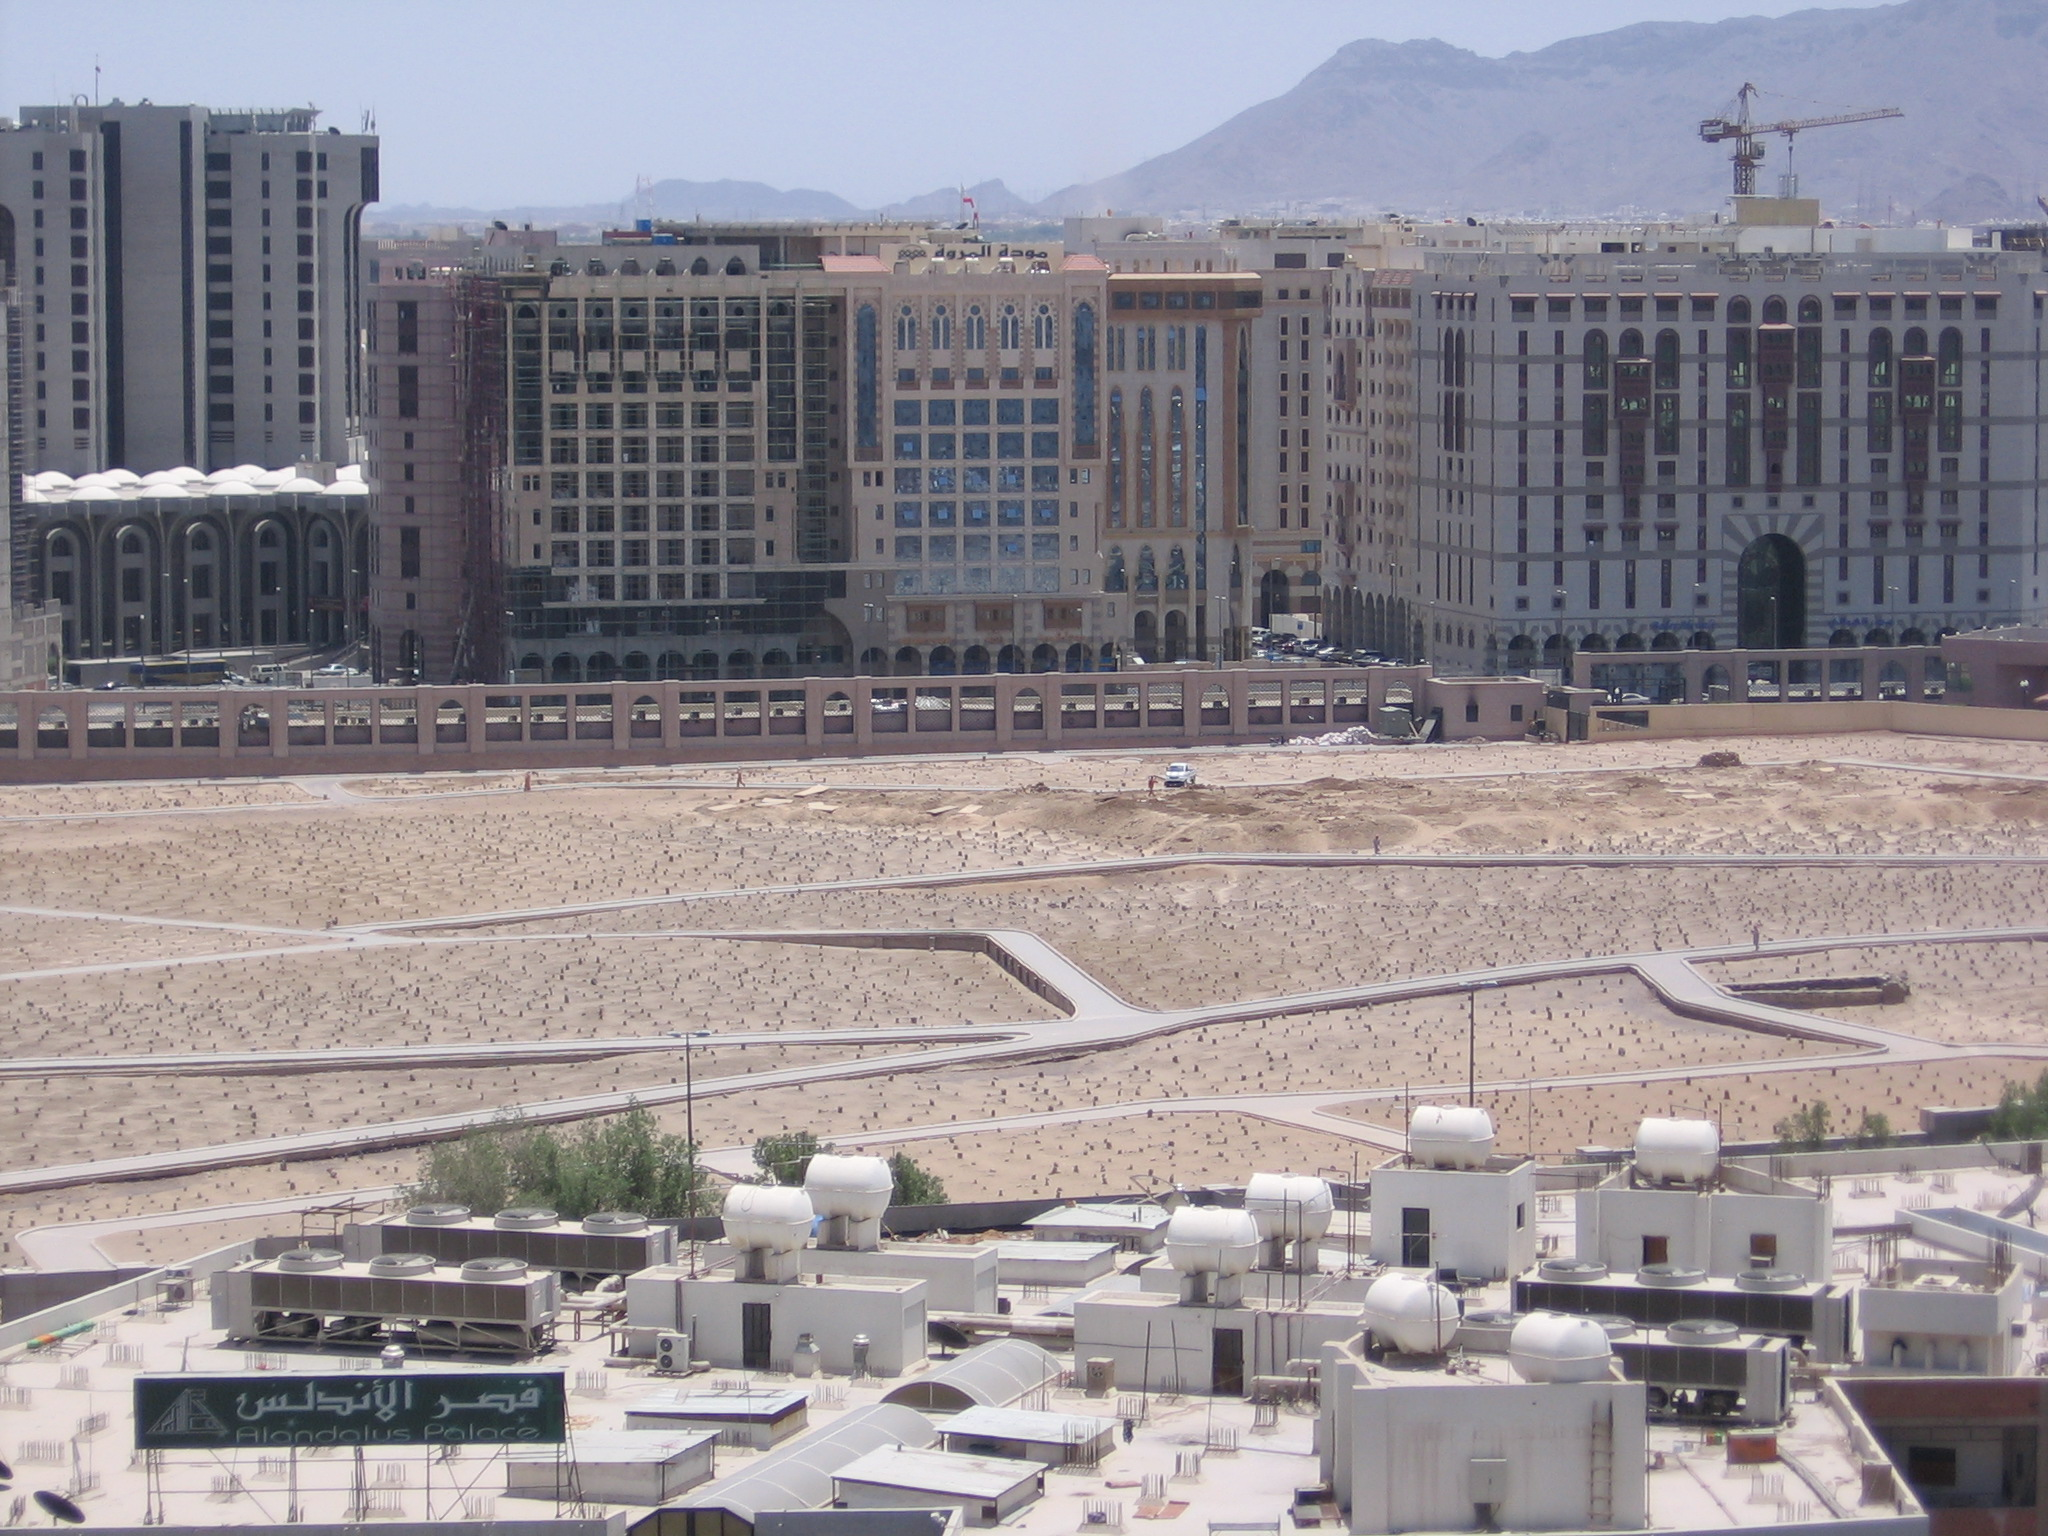 The Cemetery of Jannat al-Baqi in Medina, Saudi Arabia. The mausoleums were leveled after Medina was conquered by Saudis in 1926 (Wikimedia Commons, User: Mardetanha)